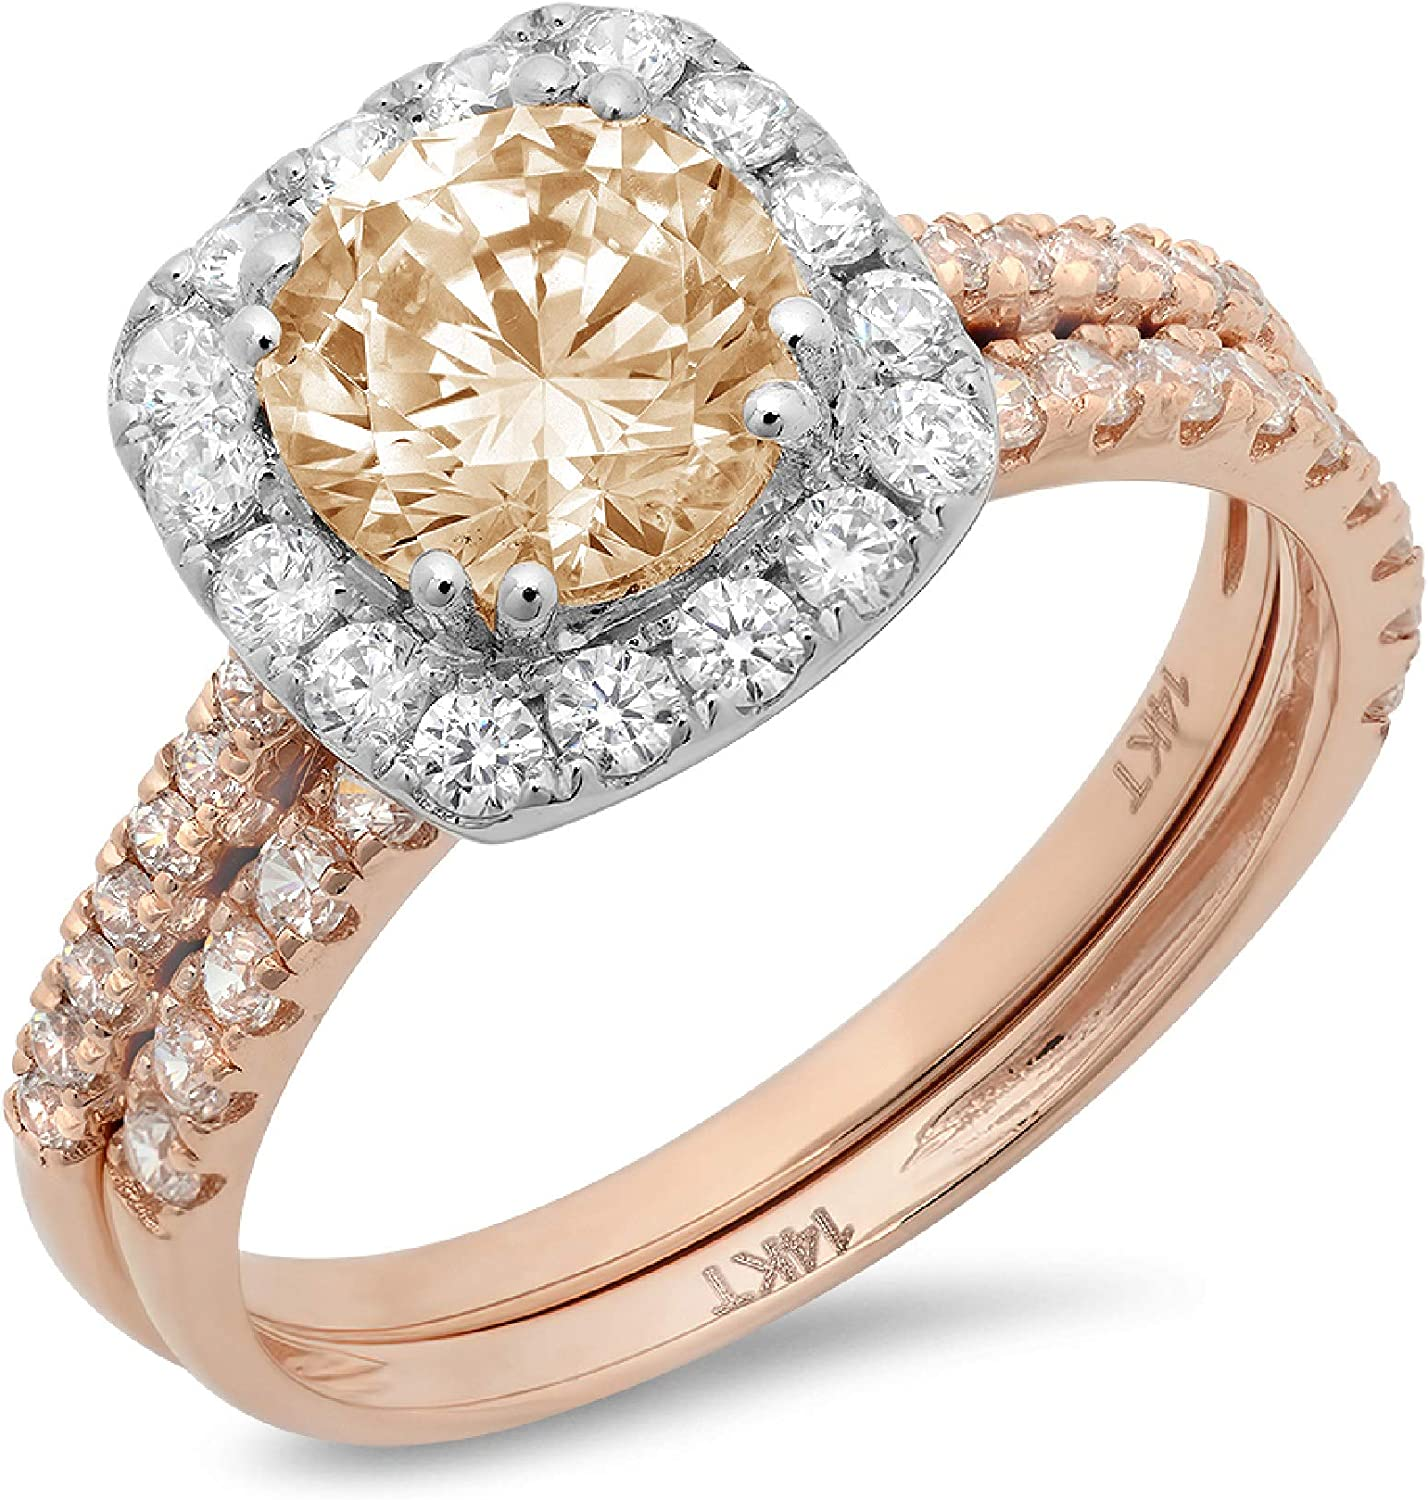 2.19ct Round Cut Halo Pave Solitaire Halo with Accent VVS1 Ideal Designer Genuine Natural Morganite Engagement Promise Designer Anniversary Wedding Bridal Ring band set 14k 2 Tone Gold